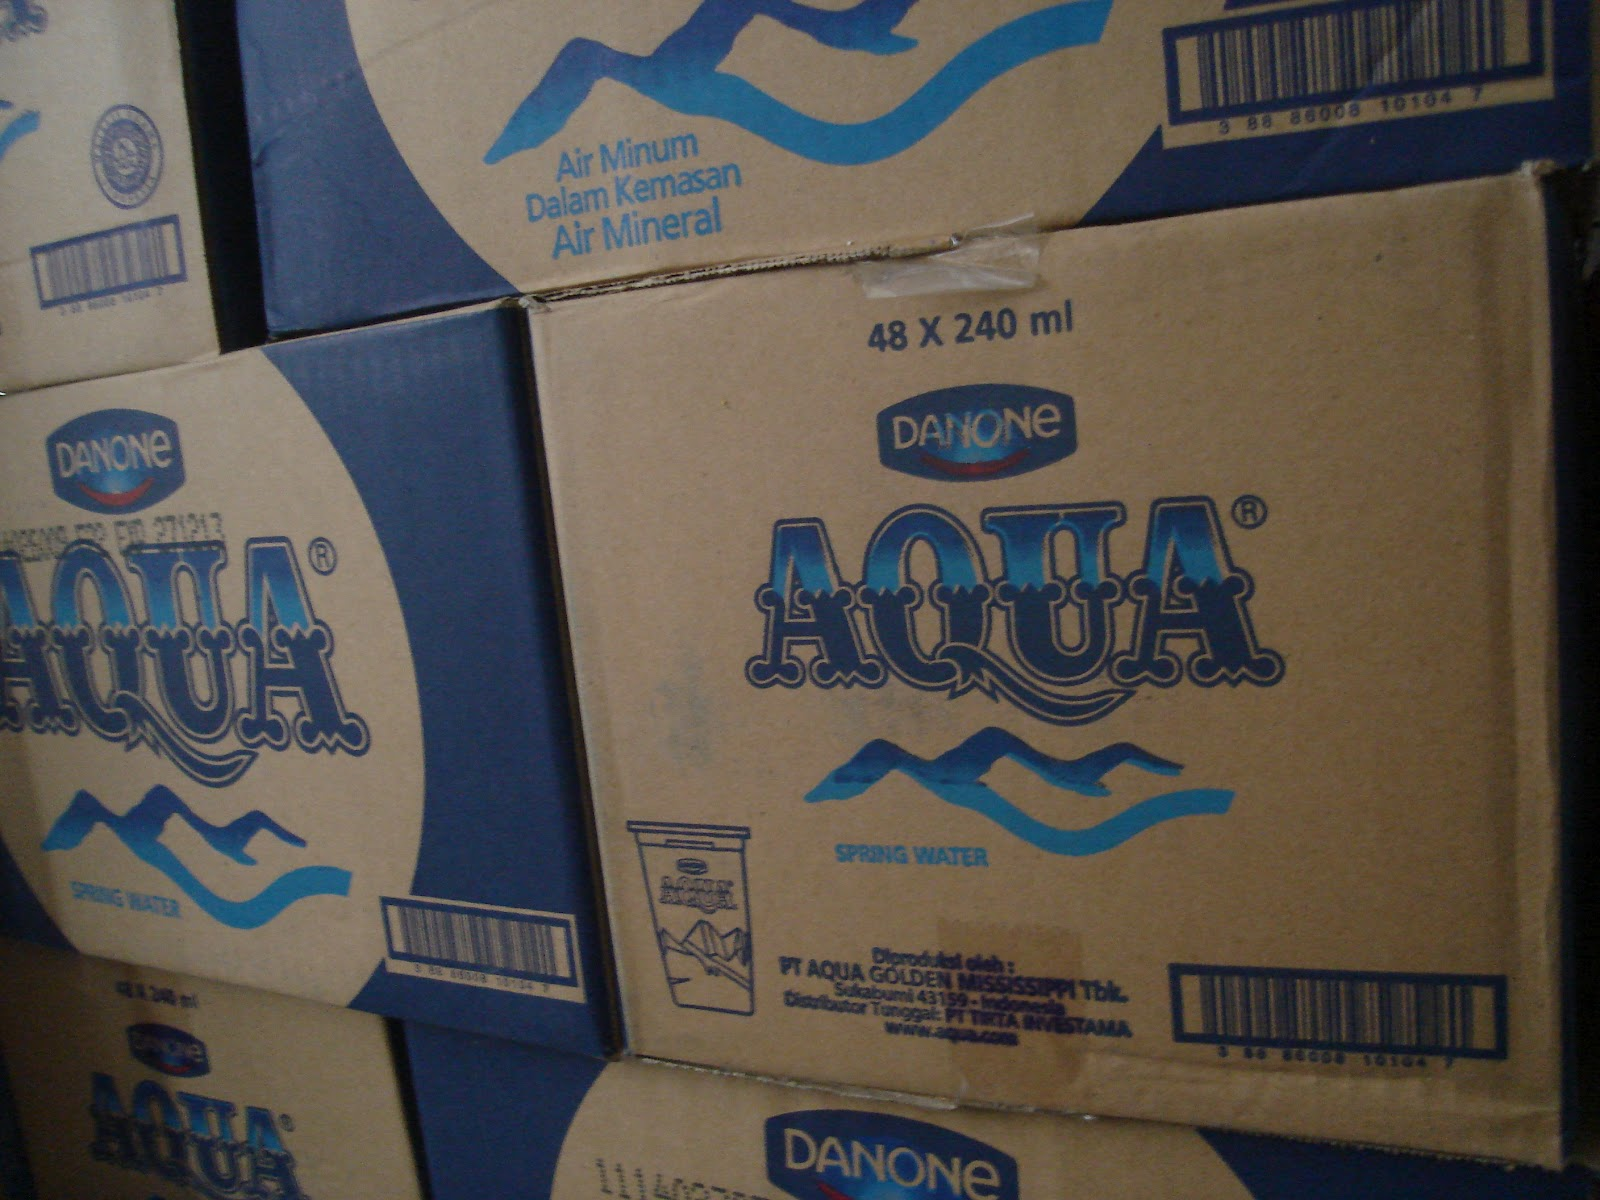 1 Galon Berapa Liter Aqua Home Service Baskoro Aqua 240 Ml